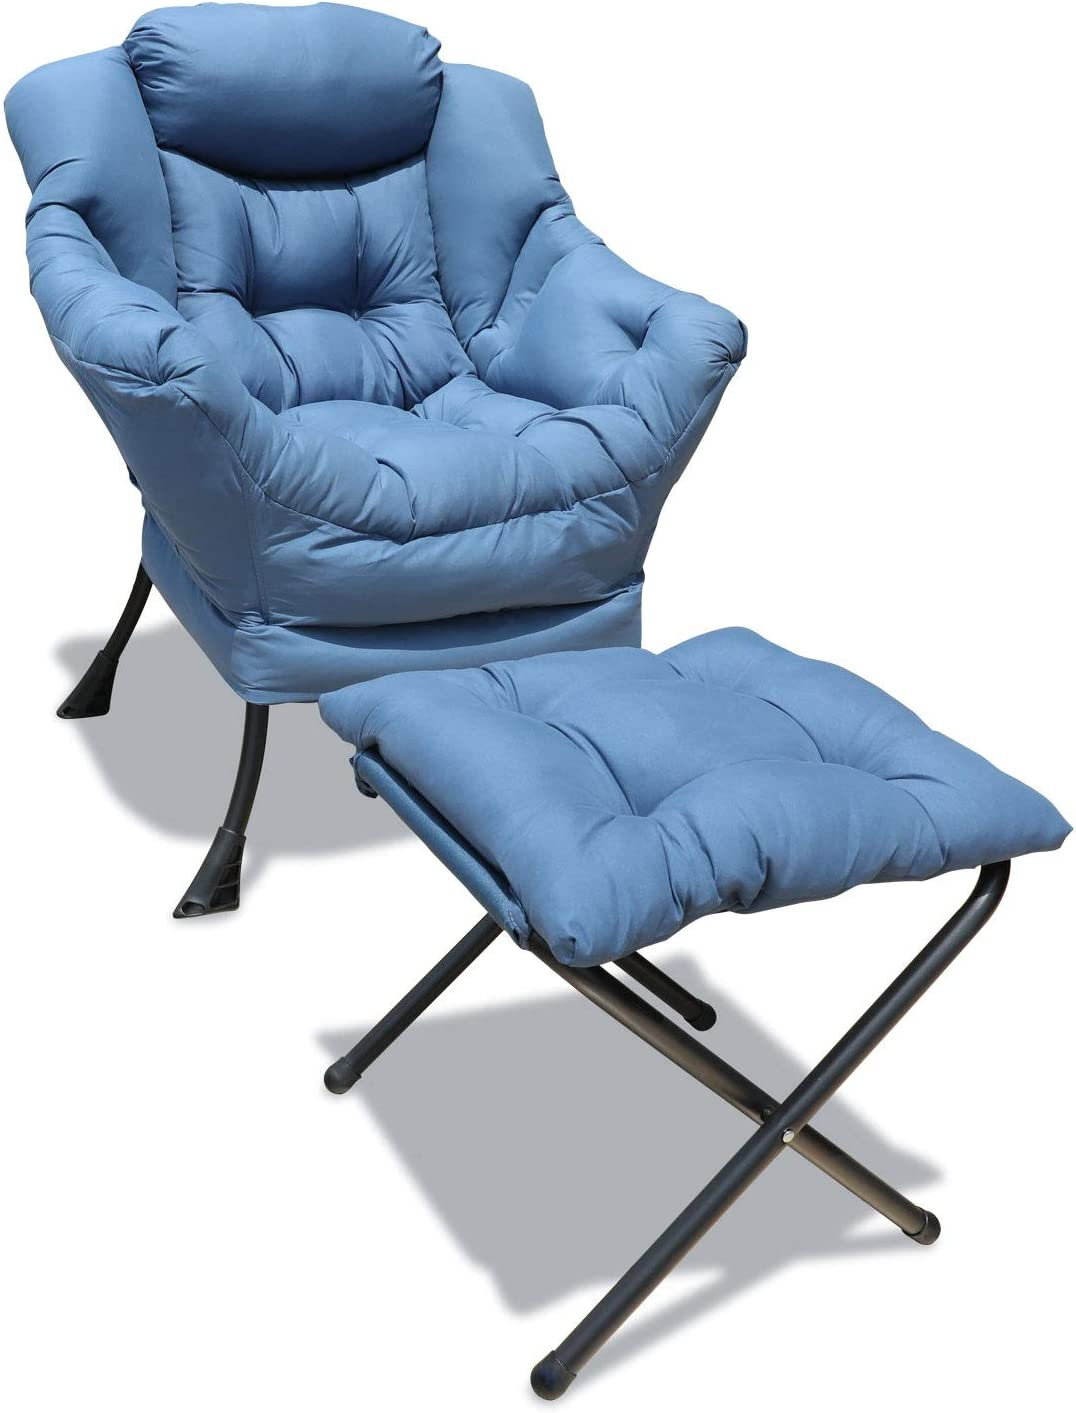 GOLDSUN Accent Chair Lazy Reclining Armchair with Removable Metal Legs and High-Density Foam, Comfy Upholstered Single Sofa Chair for Living Room, Bedroom, Office (Blue with Ottoman)